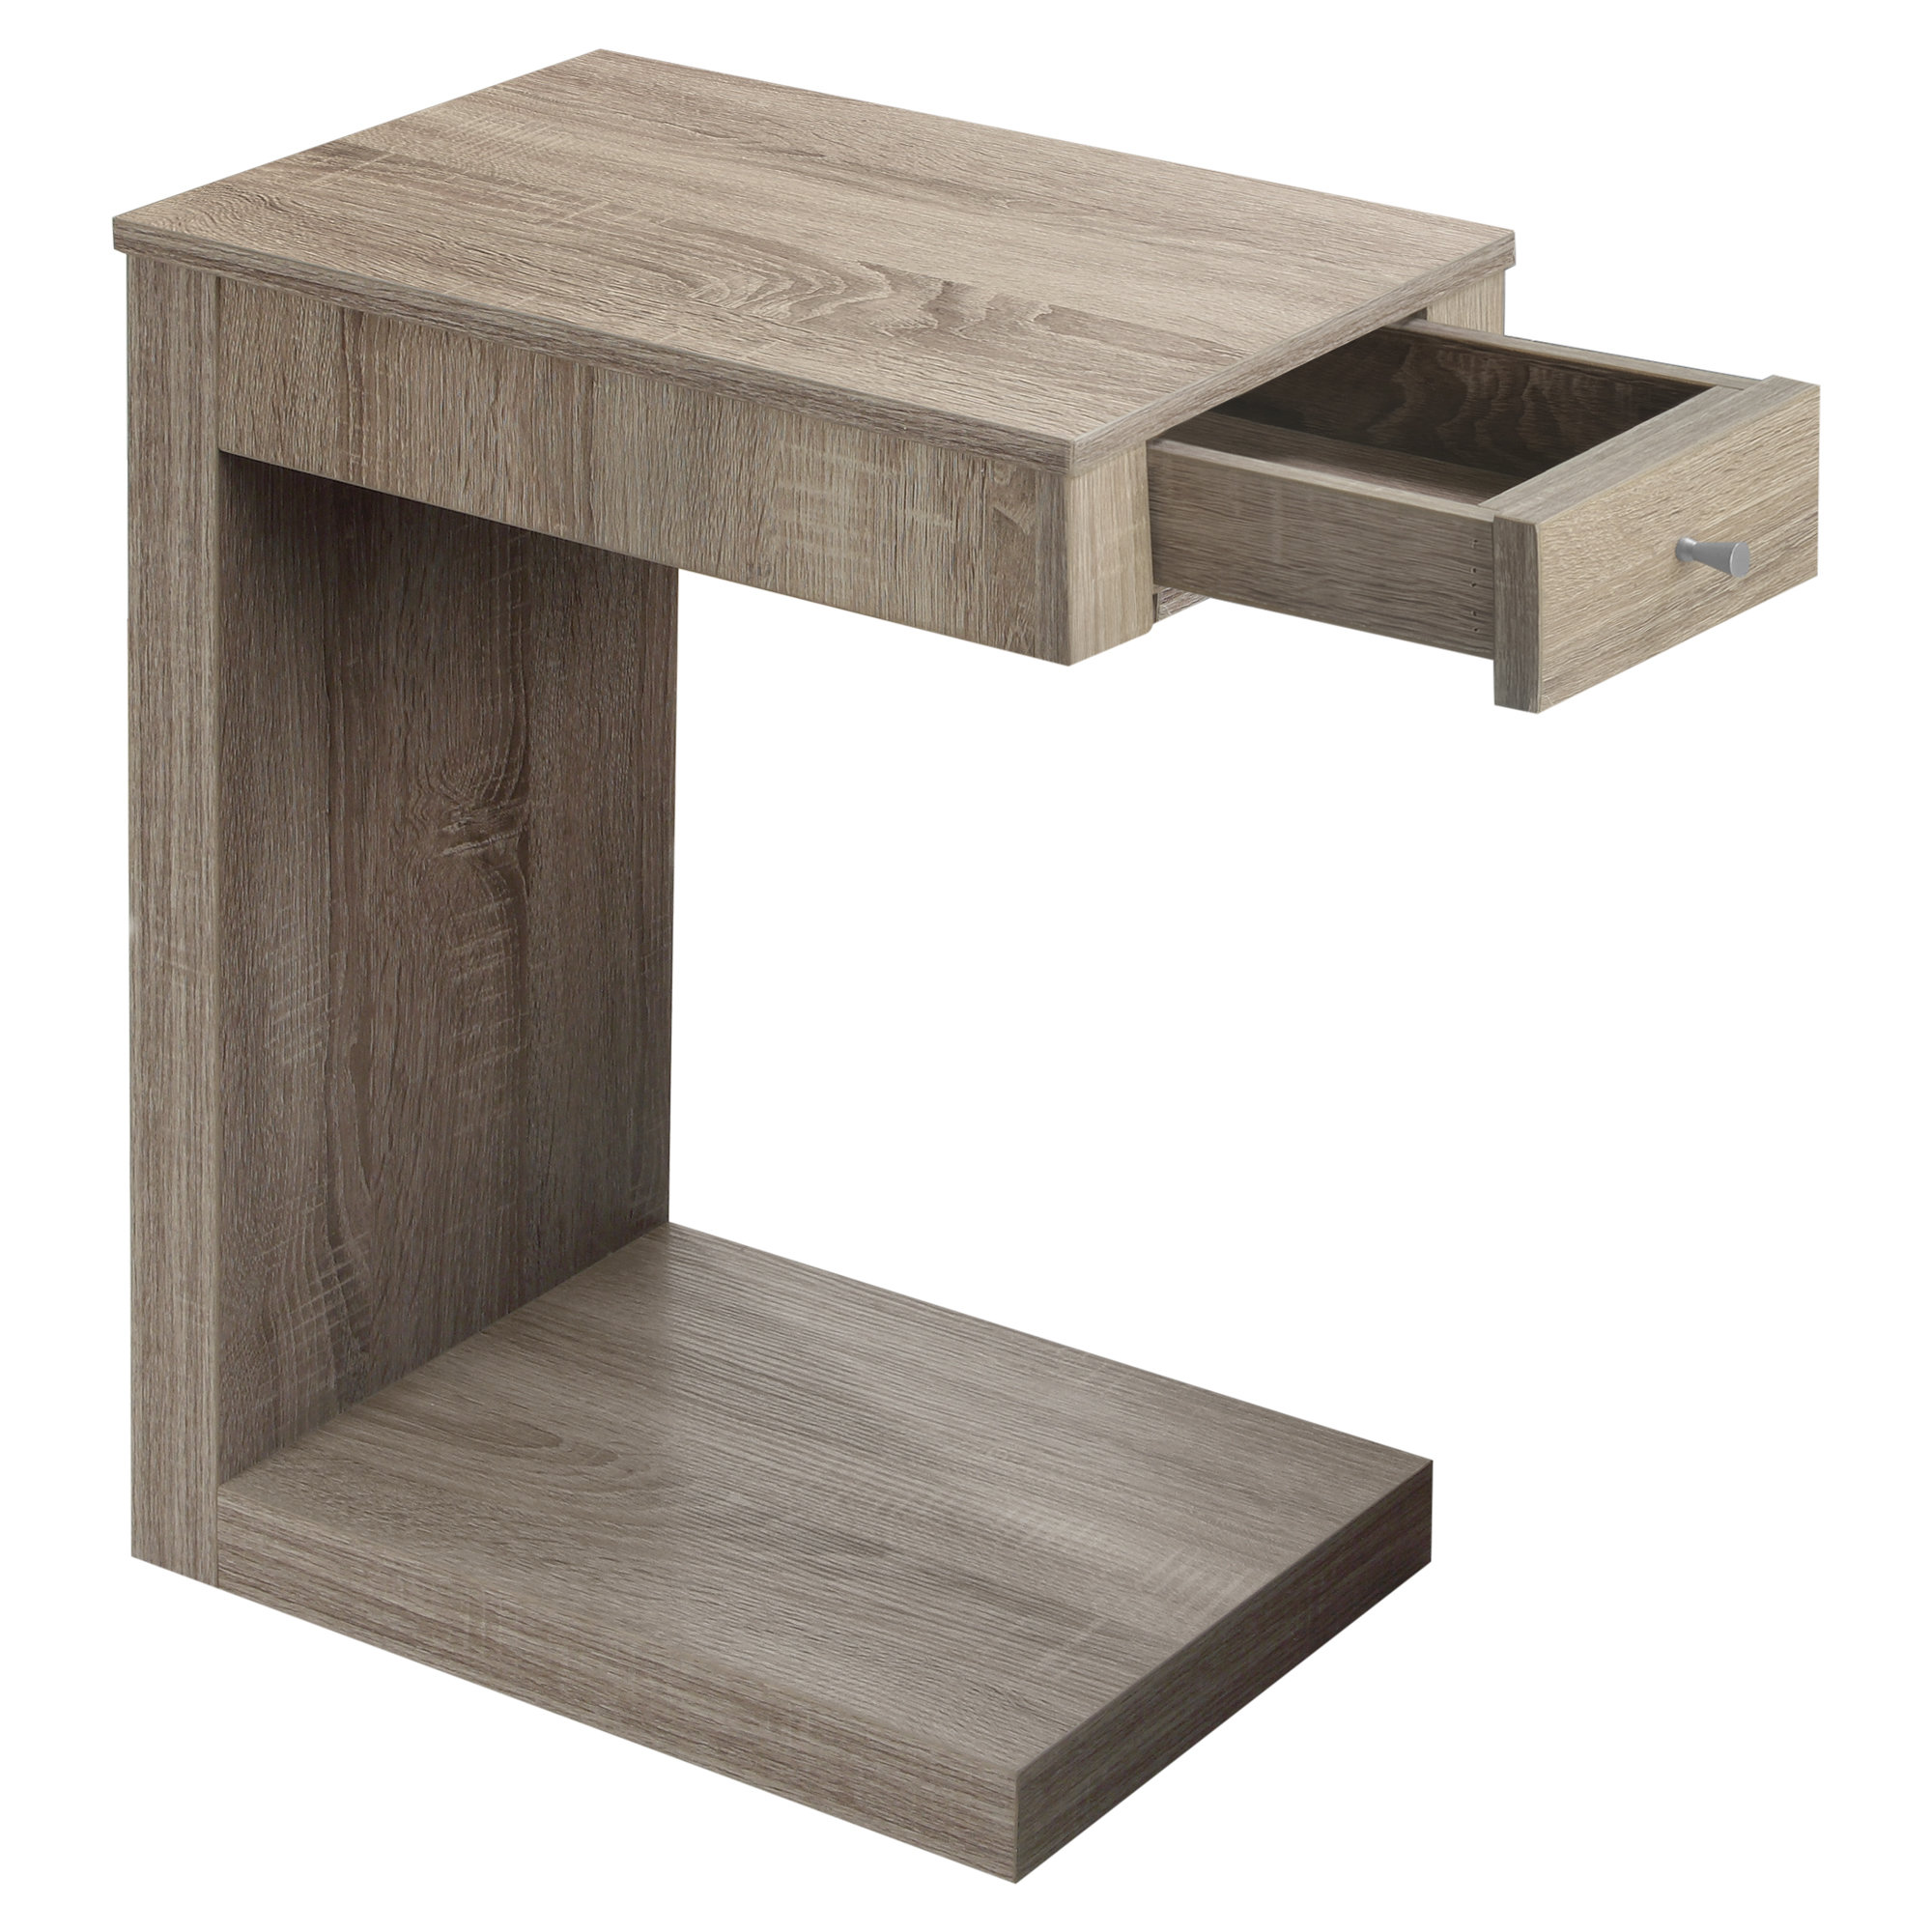 Accent Table - Dark Taupe With A Drawer